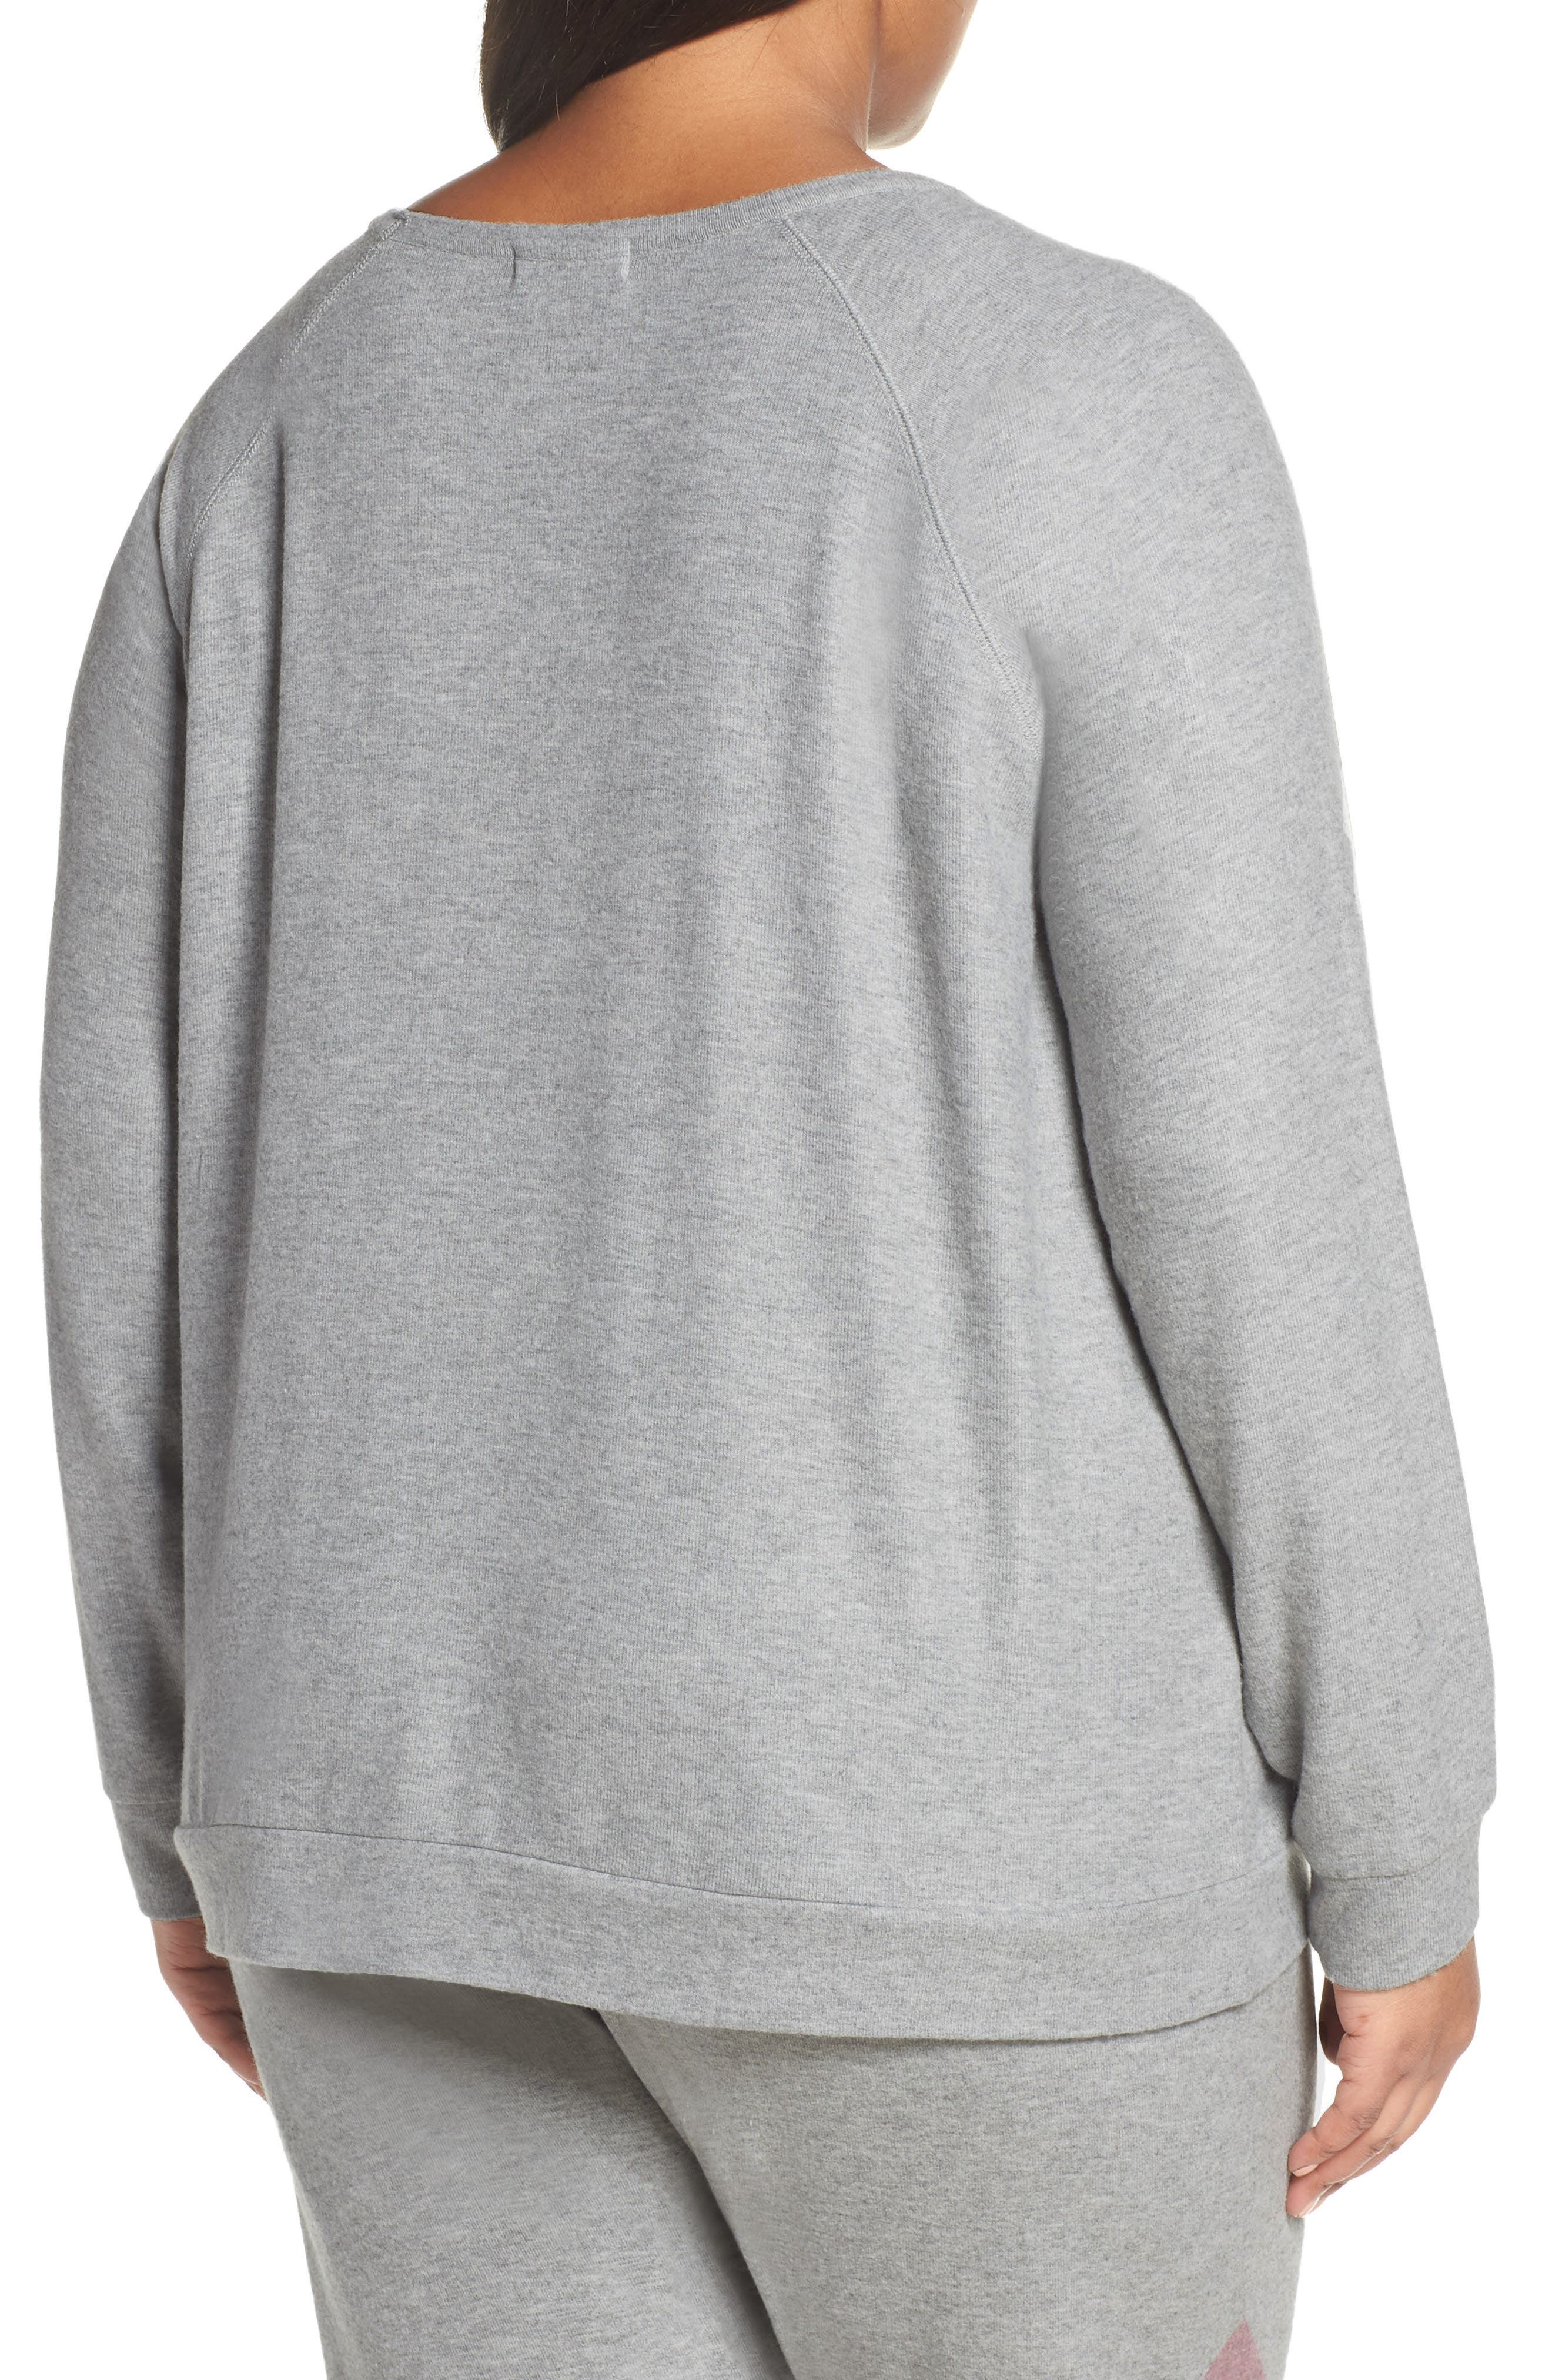 Lounge Essentials Chevron Pullover,                             Alternate thumbnail 2, color,                             HEATHER GREY